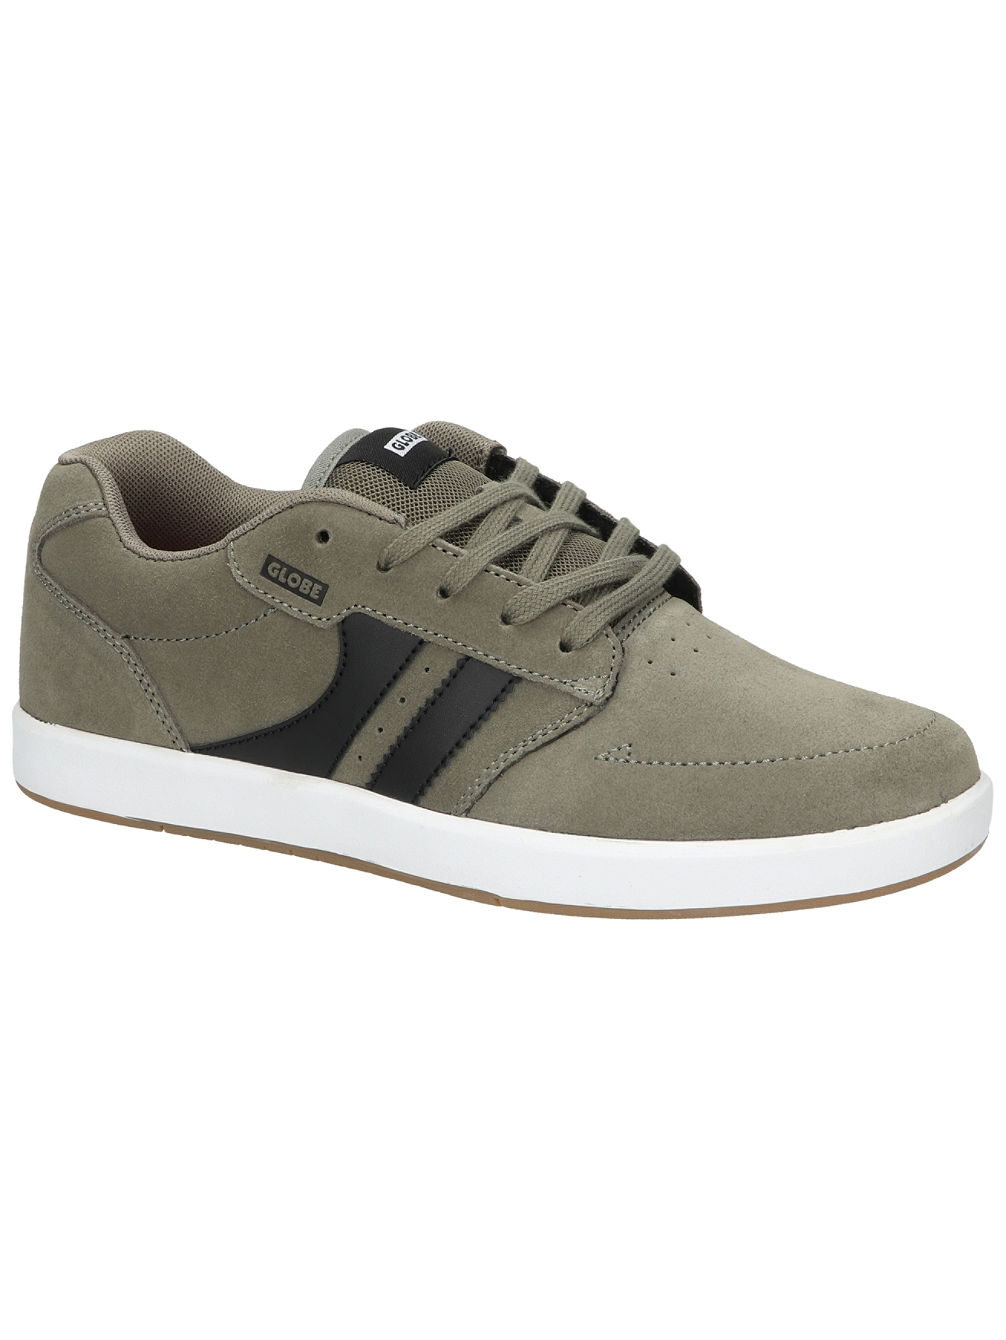 Octave Skate Shoes